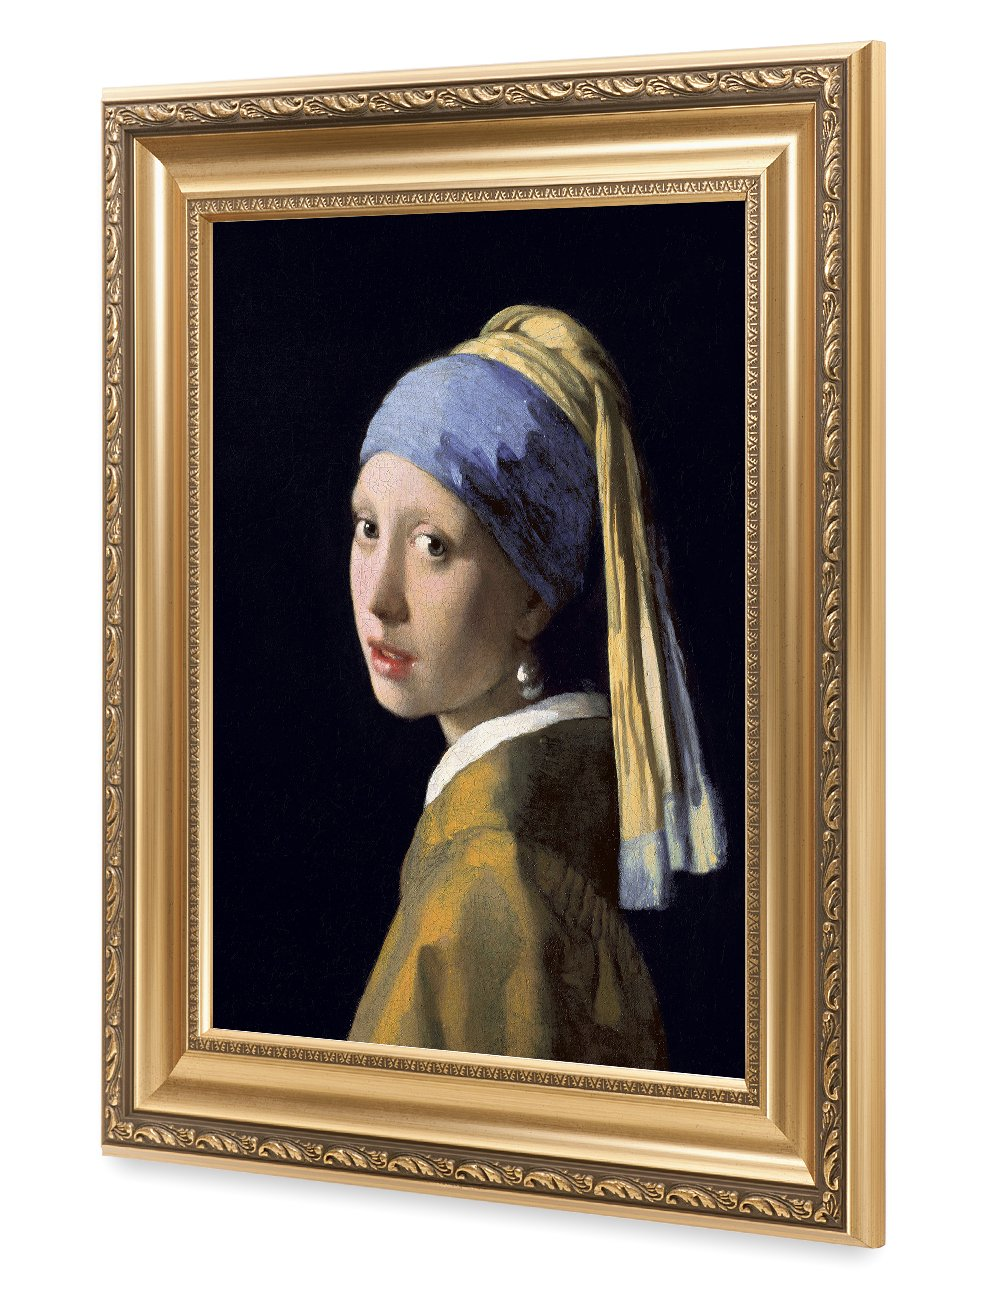 fdce22410a9 DECORARTS - Girl with A Pearl Earring by Johannes Vermeer. The World  Classic Art Reproductions. Giclee Print with Matching Museum Frame, 16x20,  ...